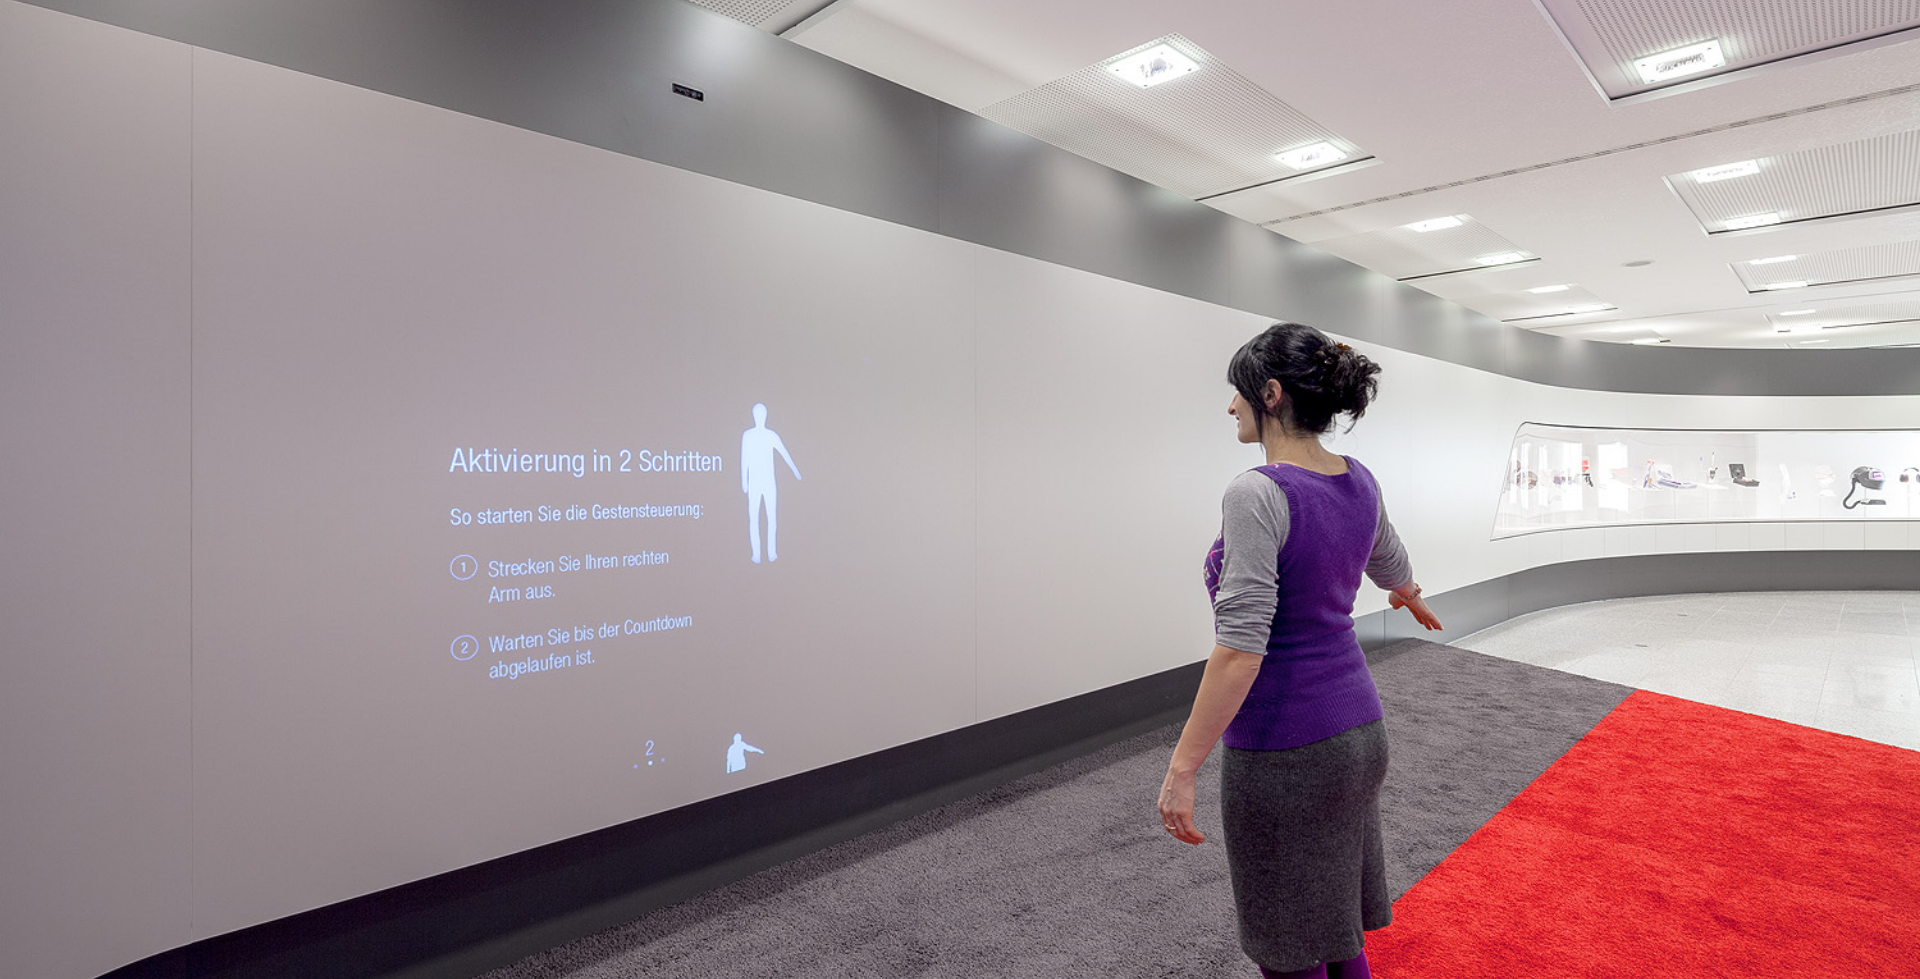 3M Deutschland Kinect Installation - Interactive Projection - realtime visions